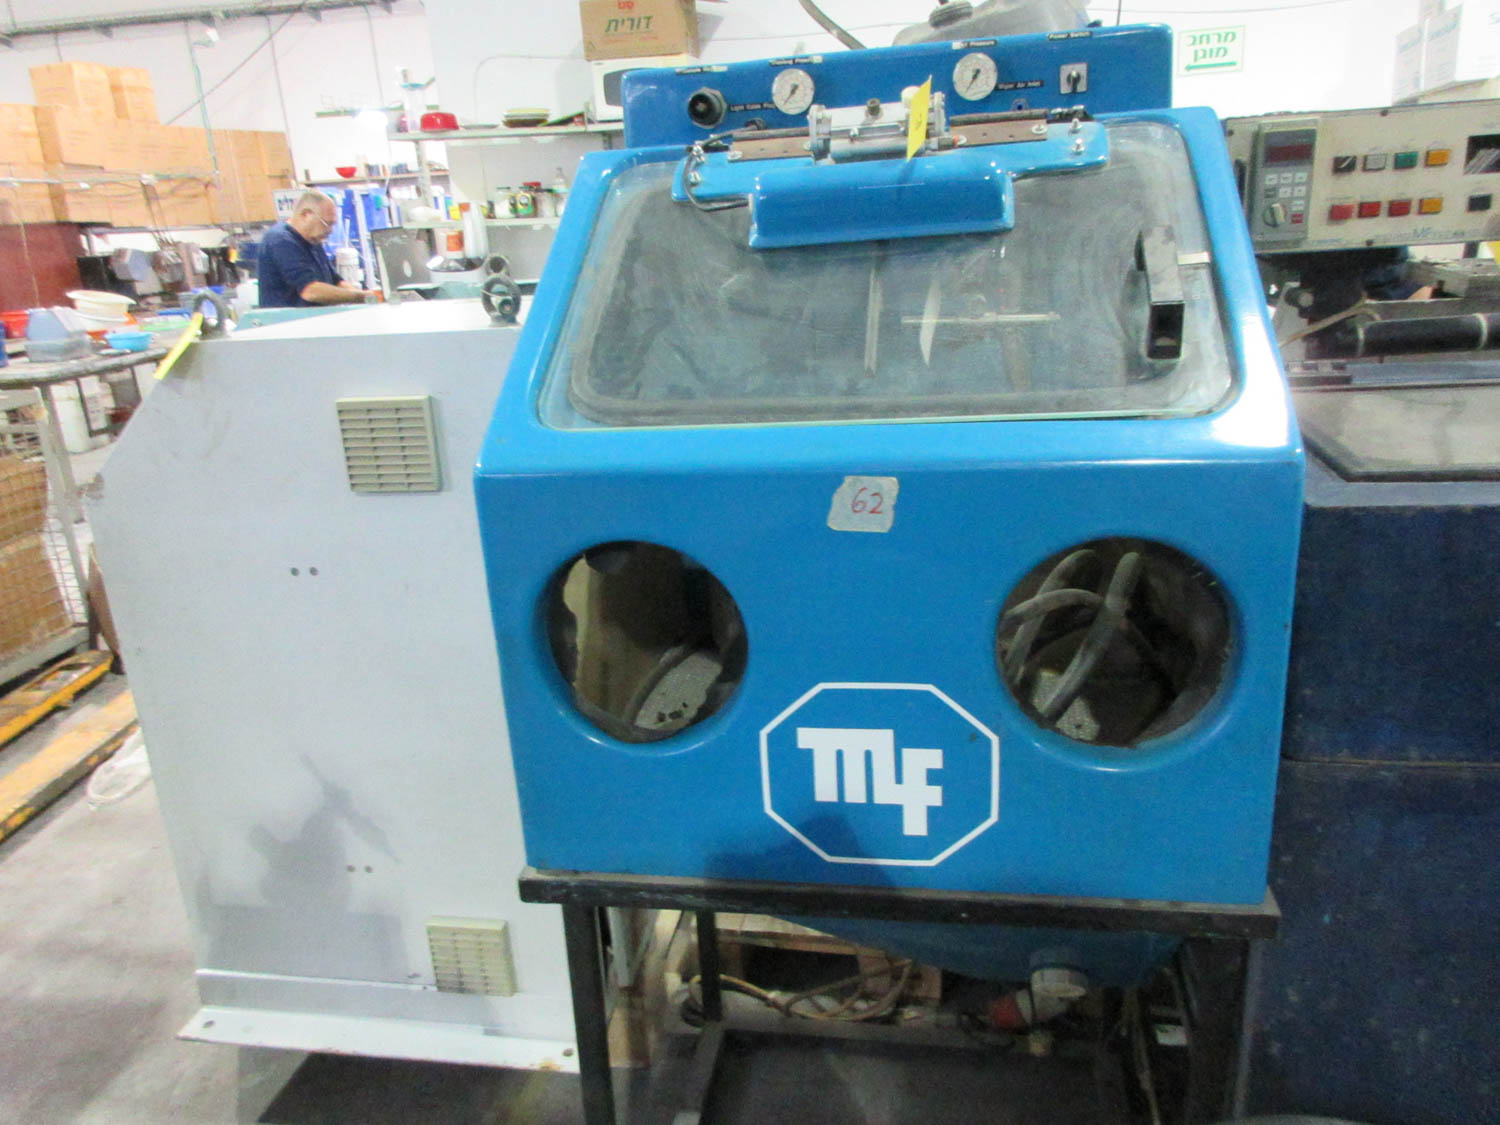 METALFINISHING MDL. SBB0 16 EKOBLAST SAND BLAST MACHINE; 50 HZ; 0.55 KW, S/N: 000728-0 (2000) [A#